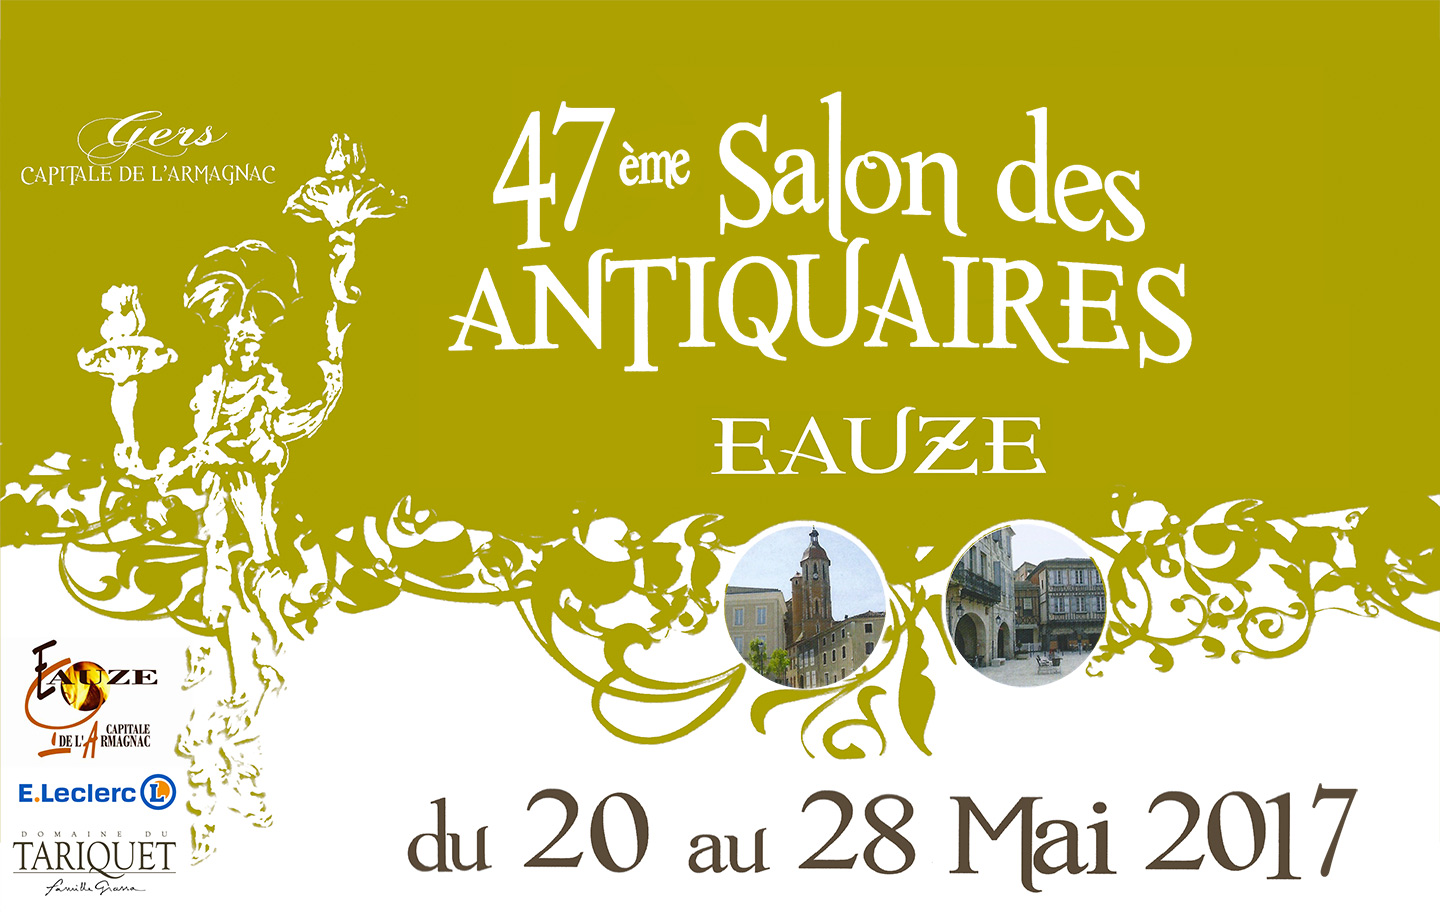 Salon des antiquaires d 39 eauze 2017 du 20 au 28 mai 2017 for Salon antiquaires 2017